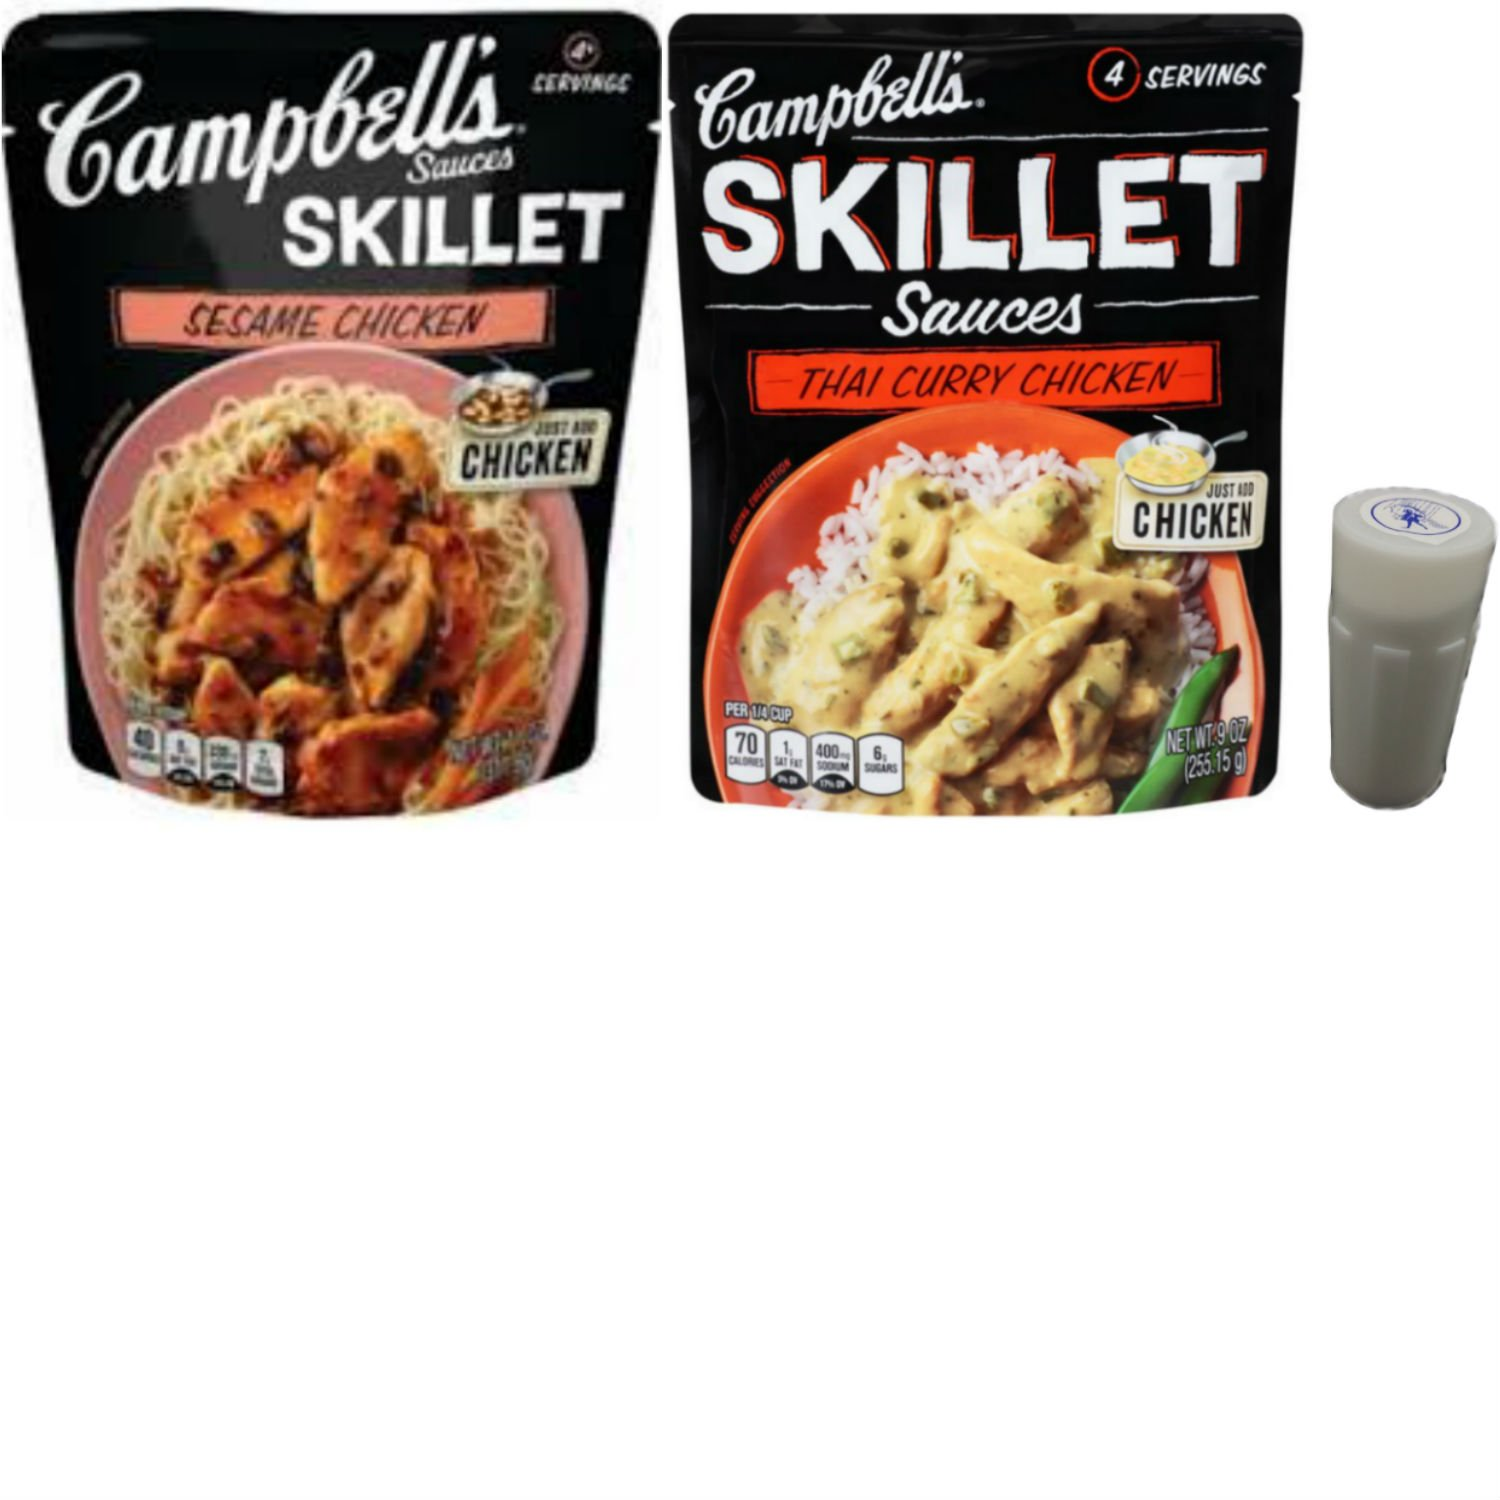 Campbells Skillet Sauces for Chicken Variety Pack. One Thai Curry and One Sesame Chicken, 11 Oz Pouches. Easy Method to Prepare Healthy Chicken Dinners. Includes 4 oz Morton Salt Shaker.